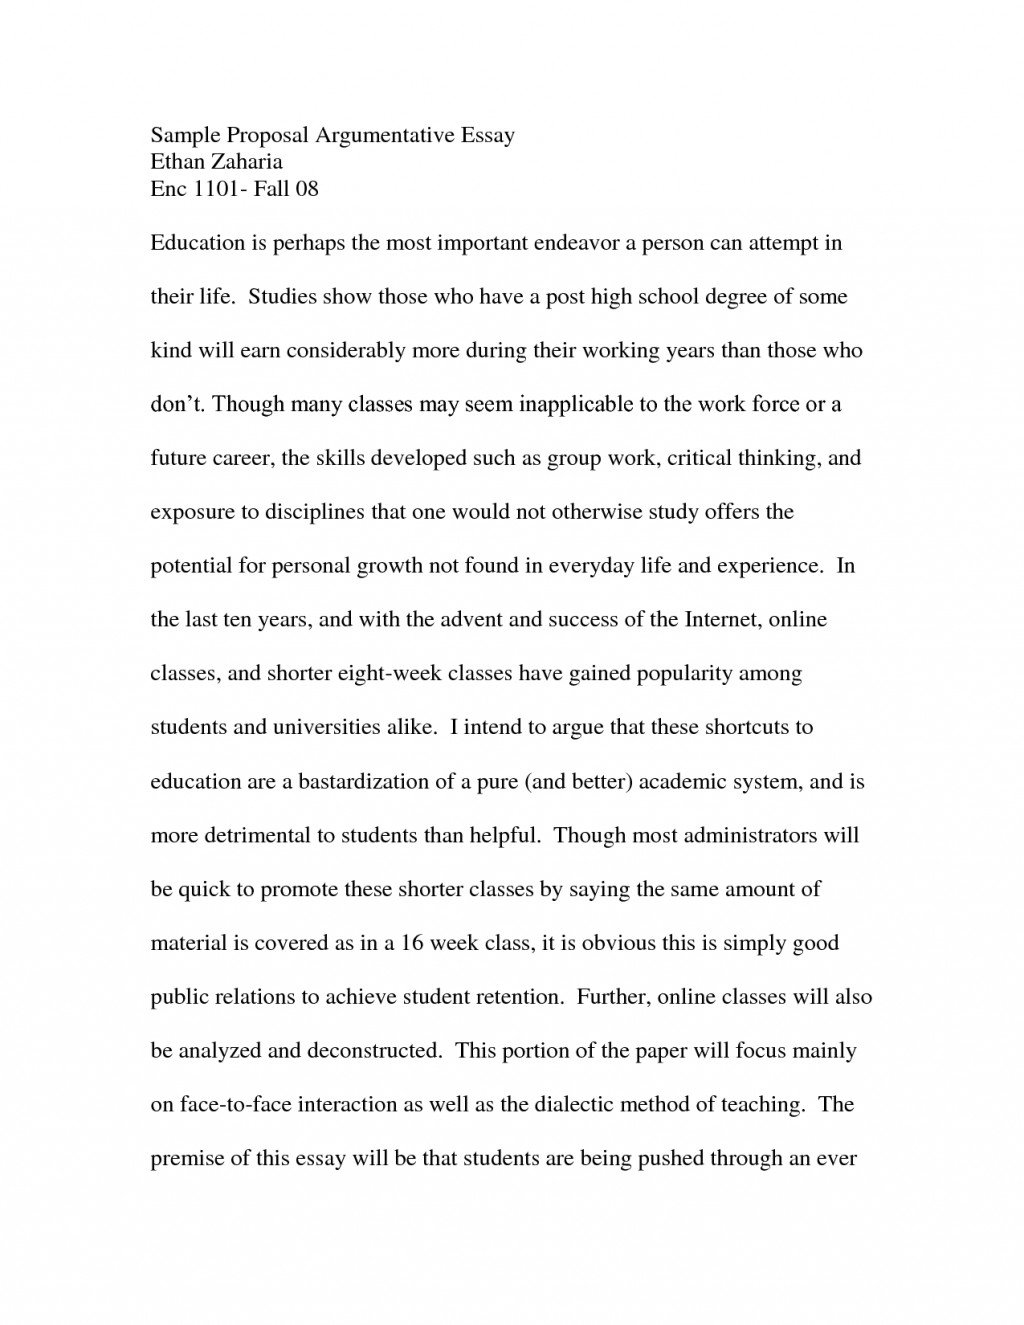 016 Essay Example 3d7hsocgst How To Write Claim For Astounding A An Of Value Fact And Support Large